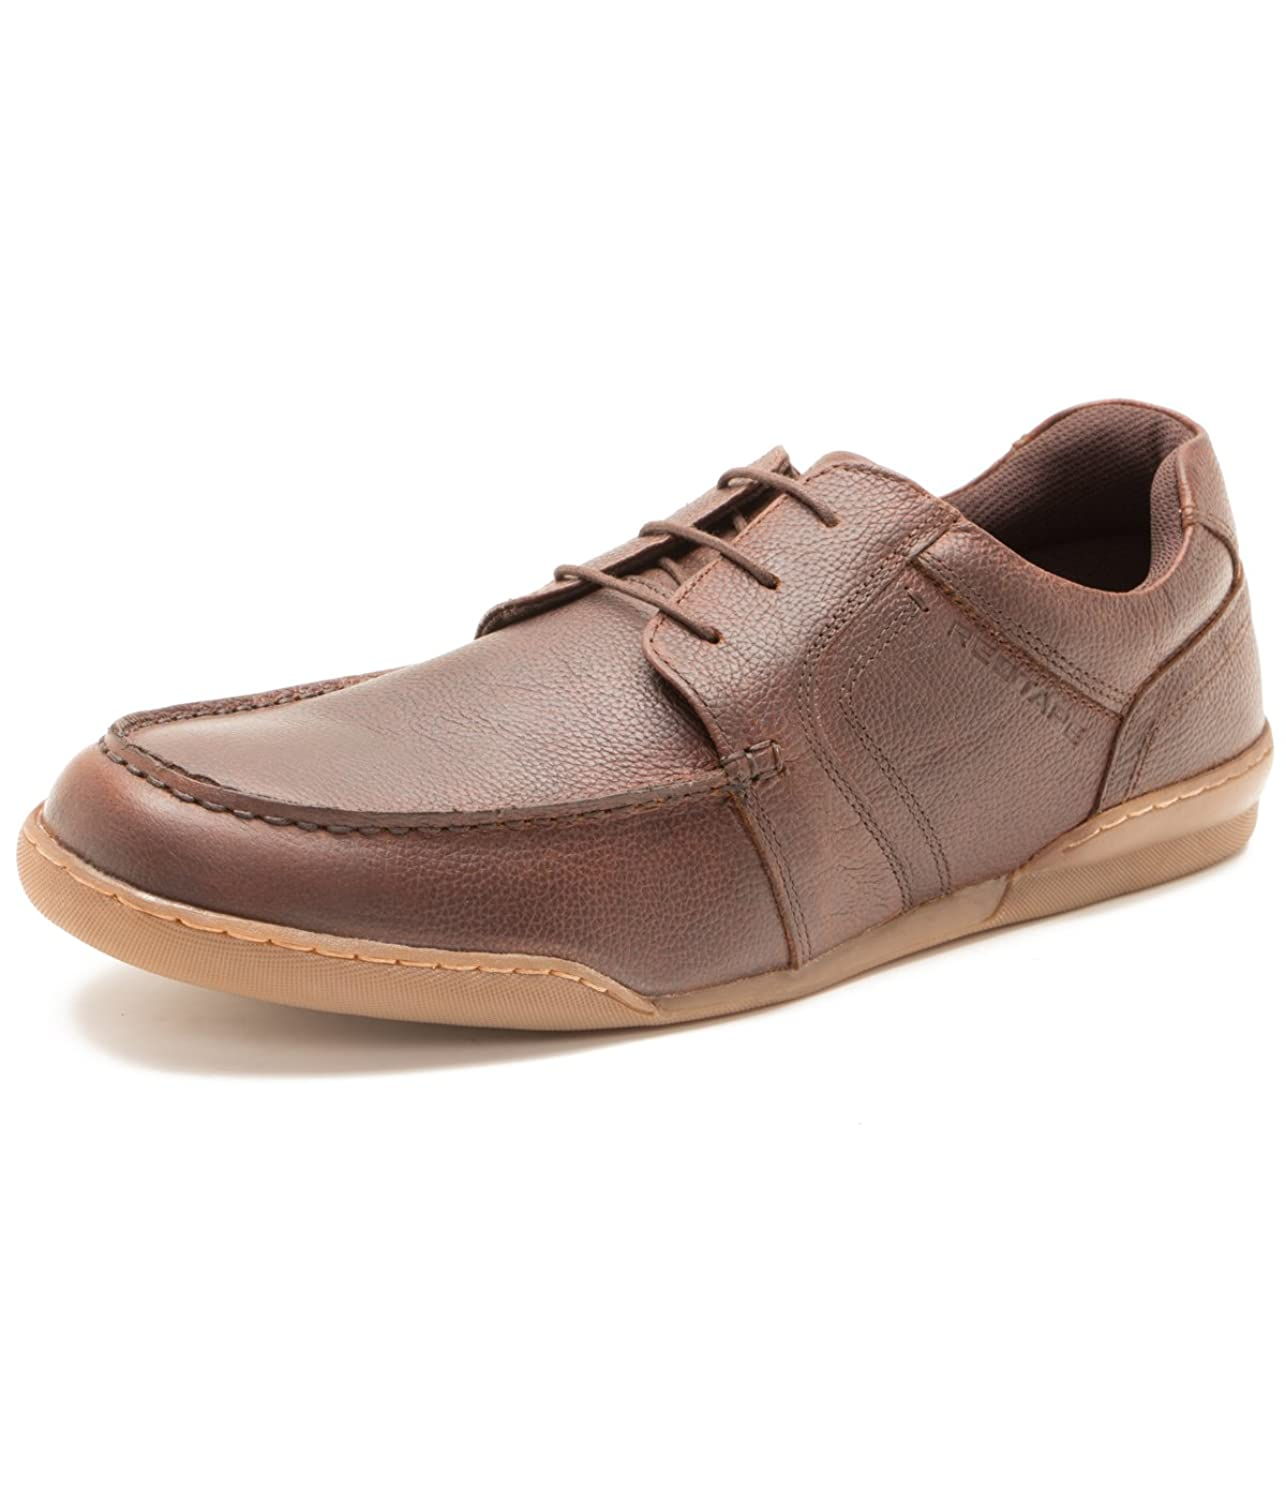 Red Tape Men's Leather Boat Shoes